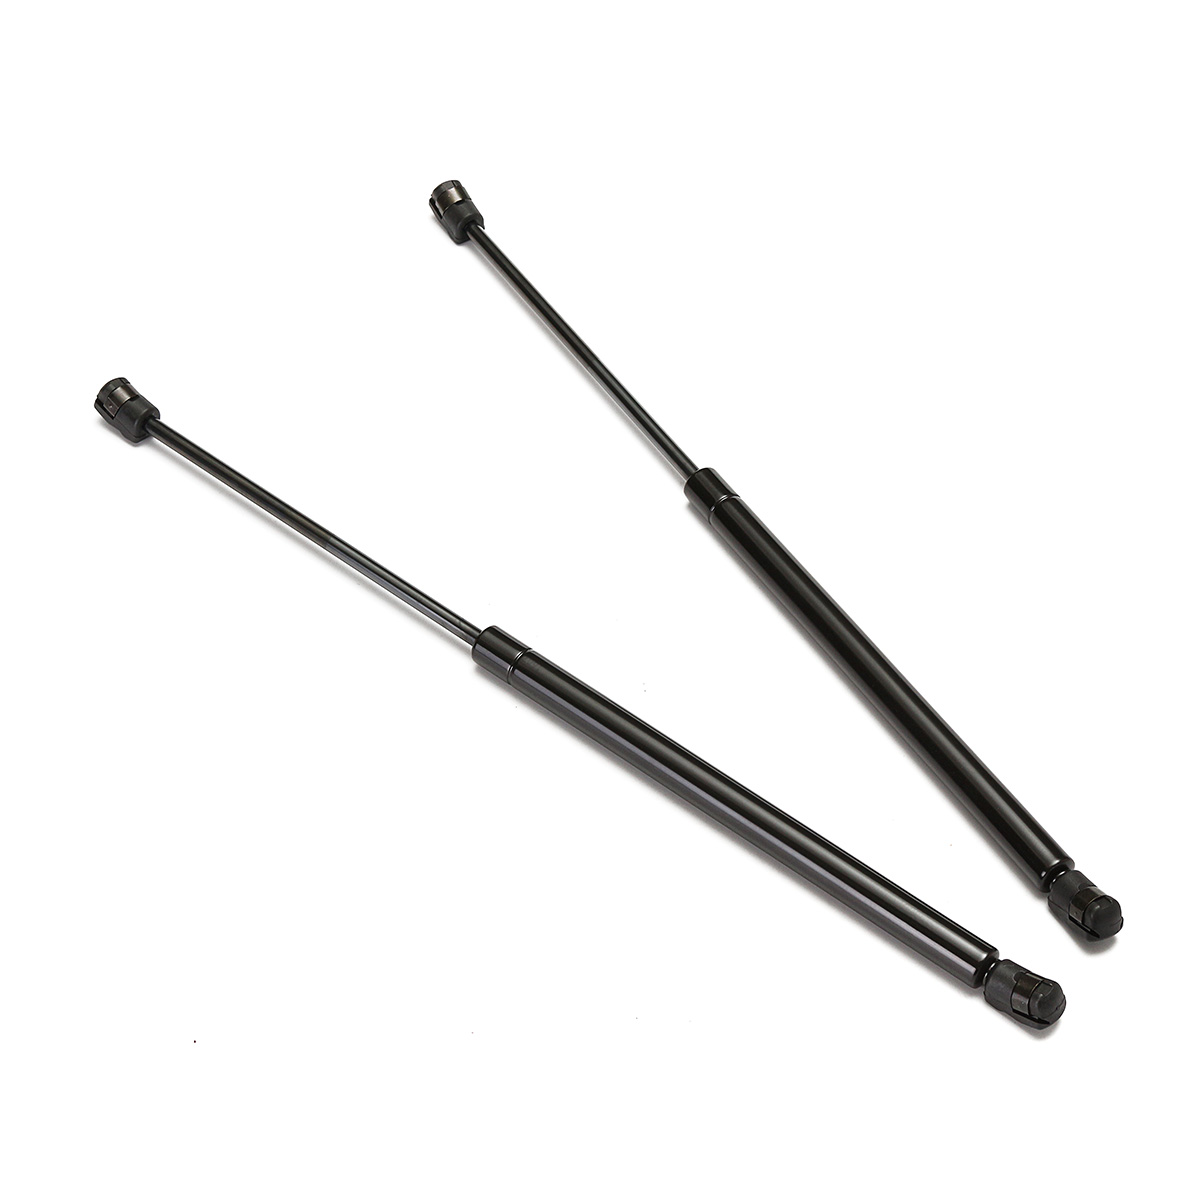 2pcs Car Rear Tailgate Lid Gas Struts Lift Support For BMW for Mini Cooper 2002-2008 41626801258